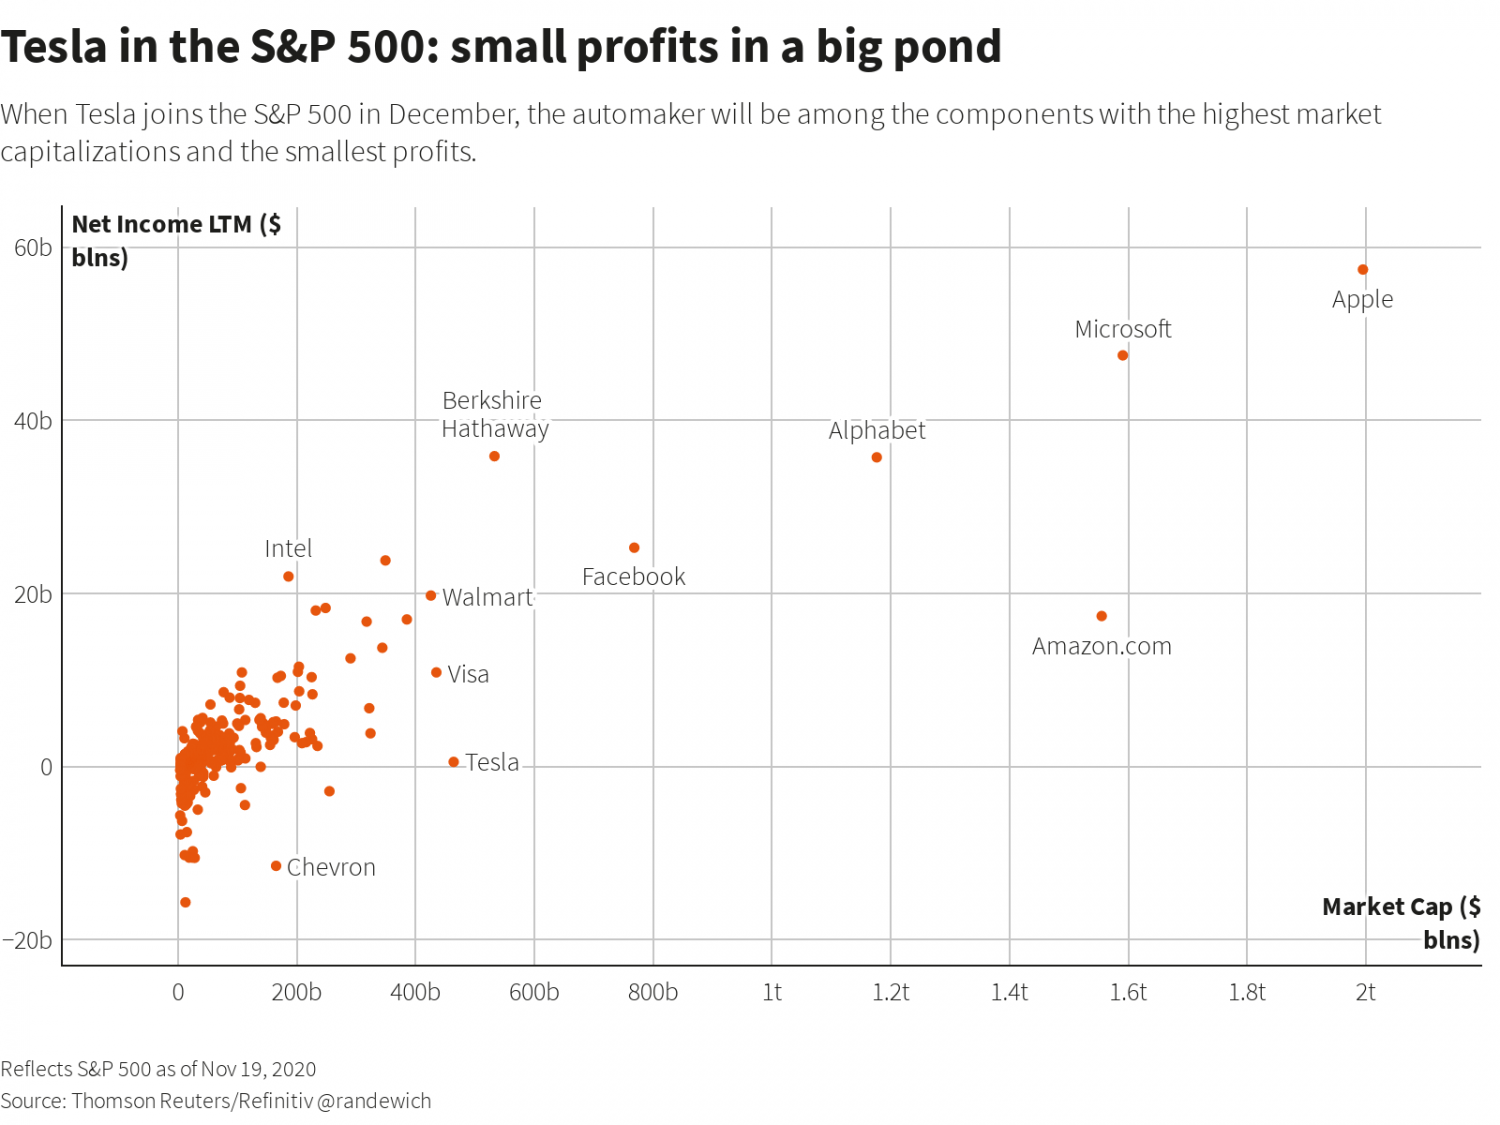 Tesla in the S&P 500: small profits in a big pond